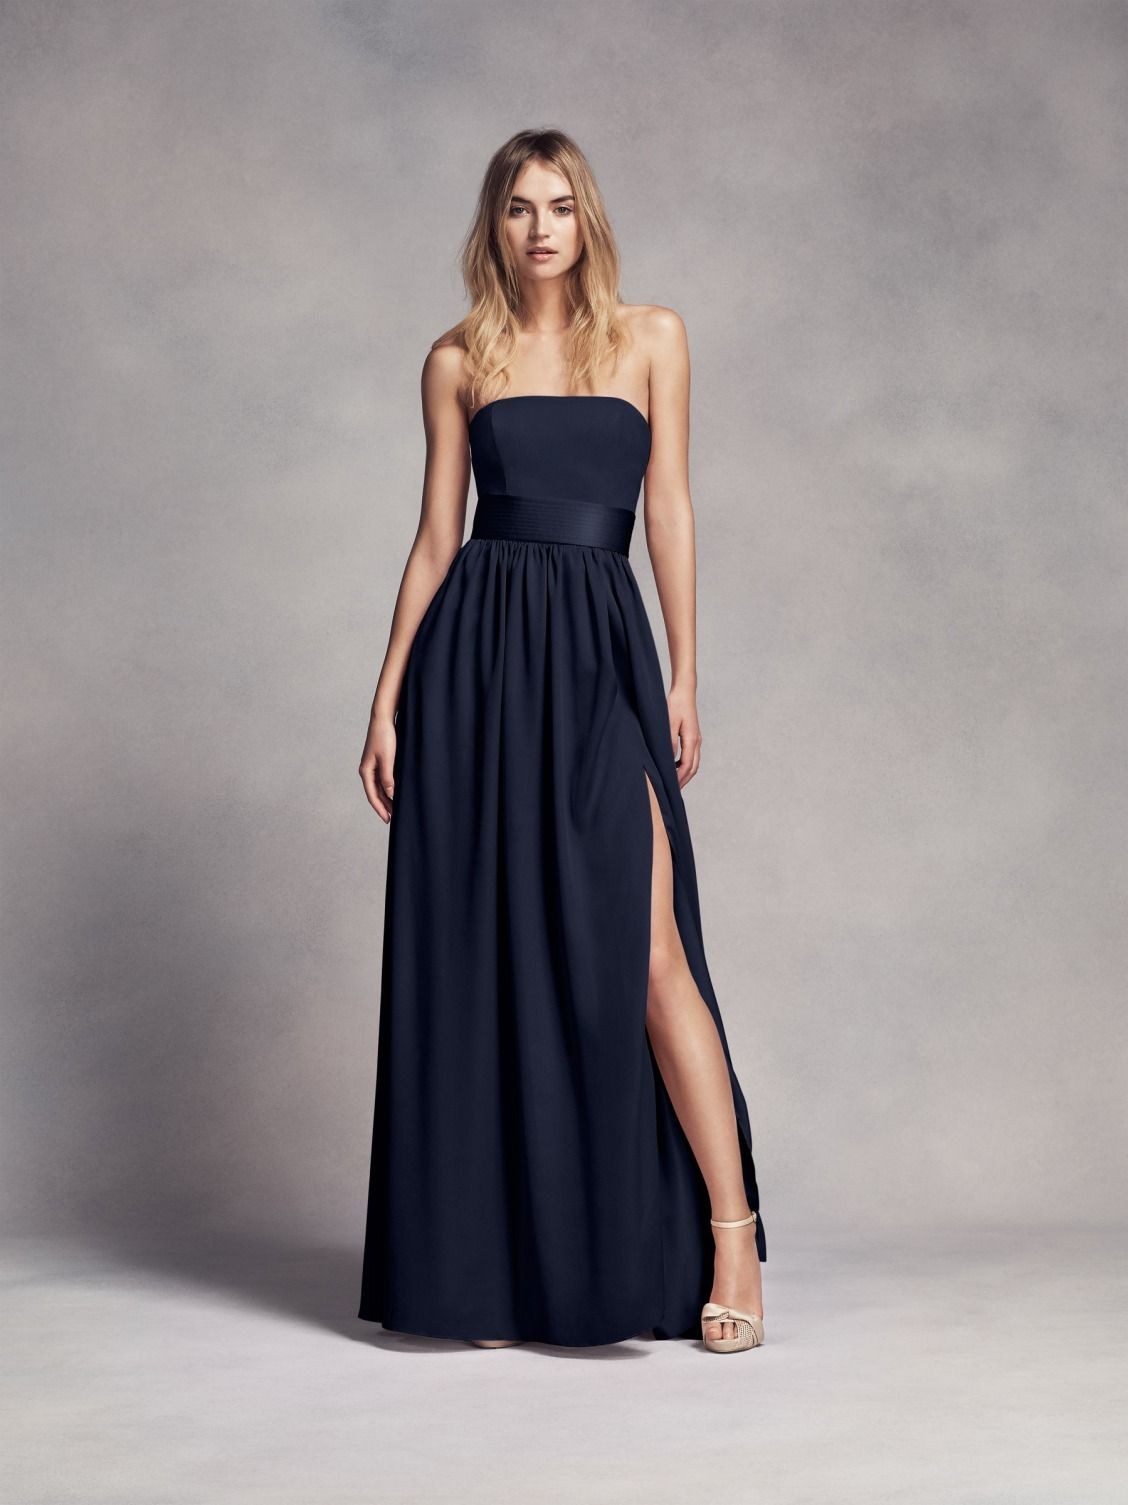 Long strapless midnight blue white by vera wang bridesmaid dress long strapless midnight blue white by vera wang bridesmaid dress available at davids bridal ombrellifo Choice Image